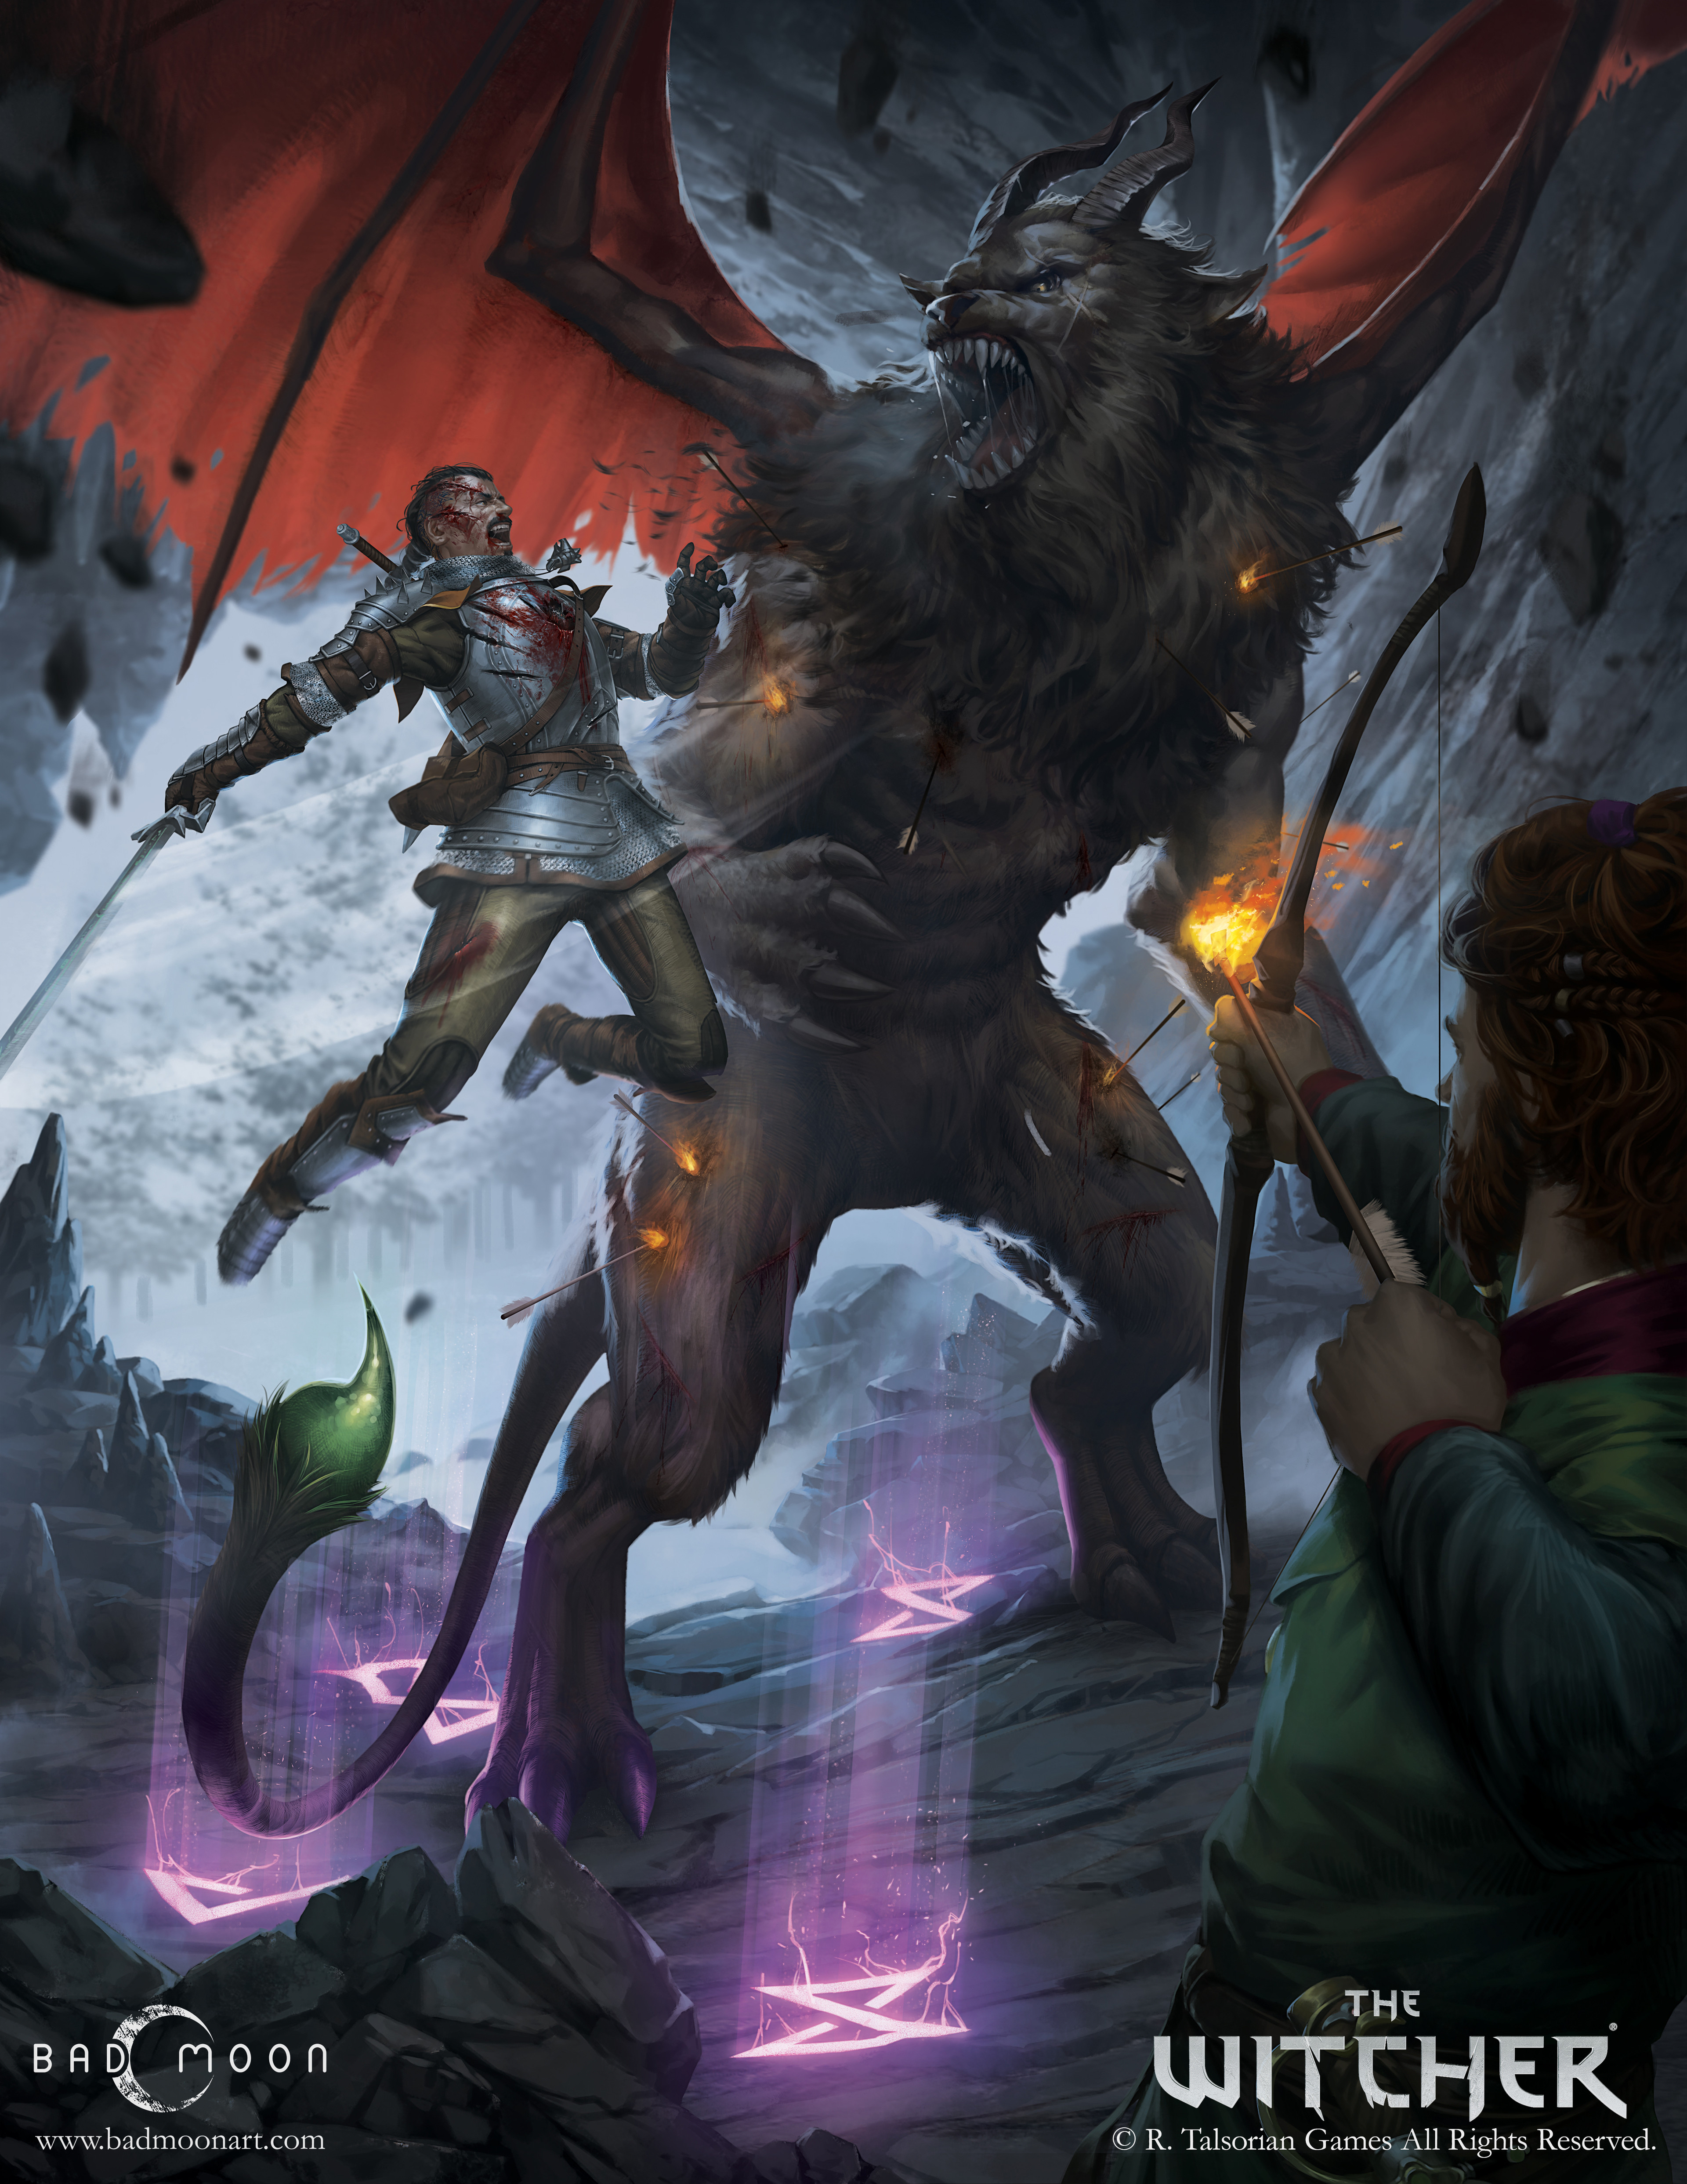 Erland of Larvik Fighting a Manticore that nearly took his life as Vaz of Ban Ard assists the Witcher.